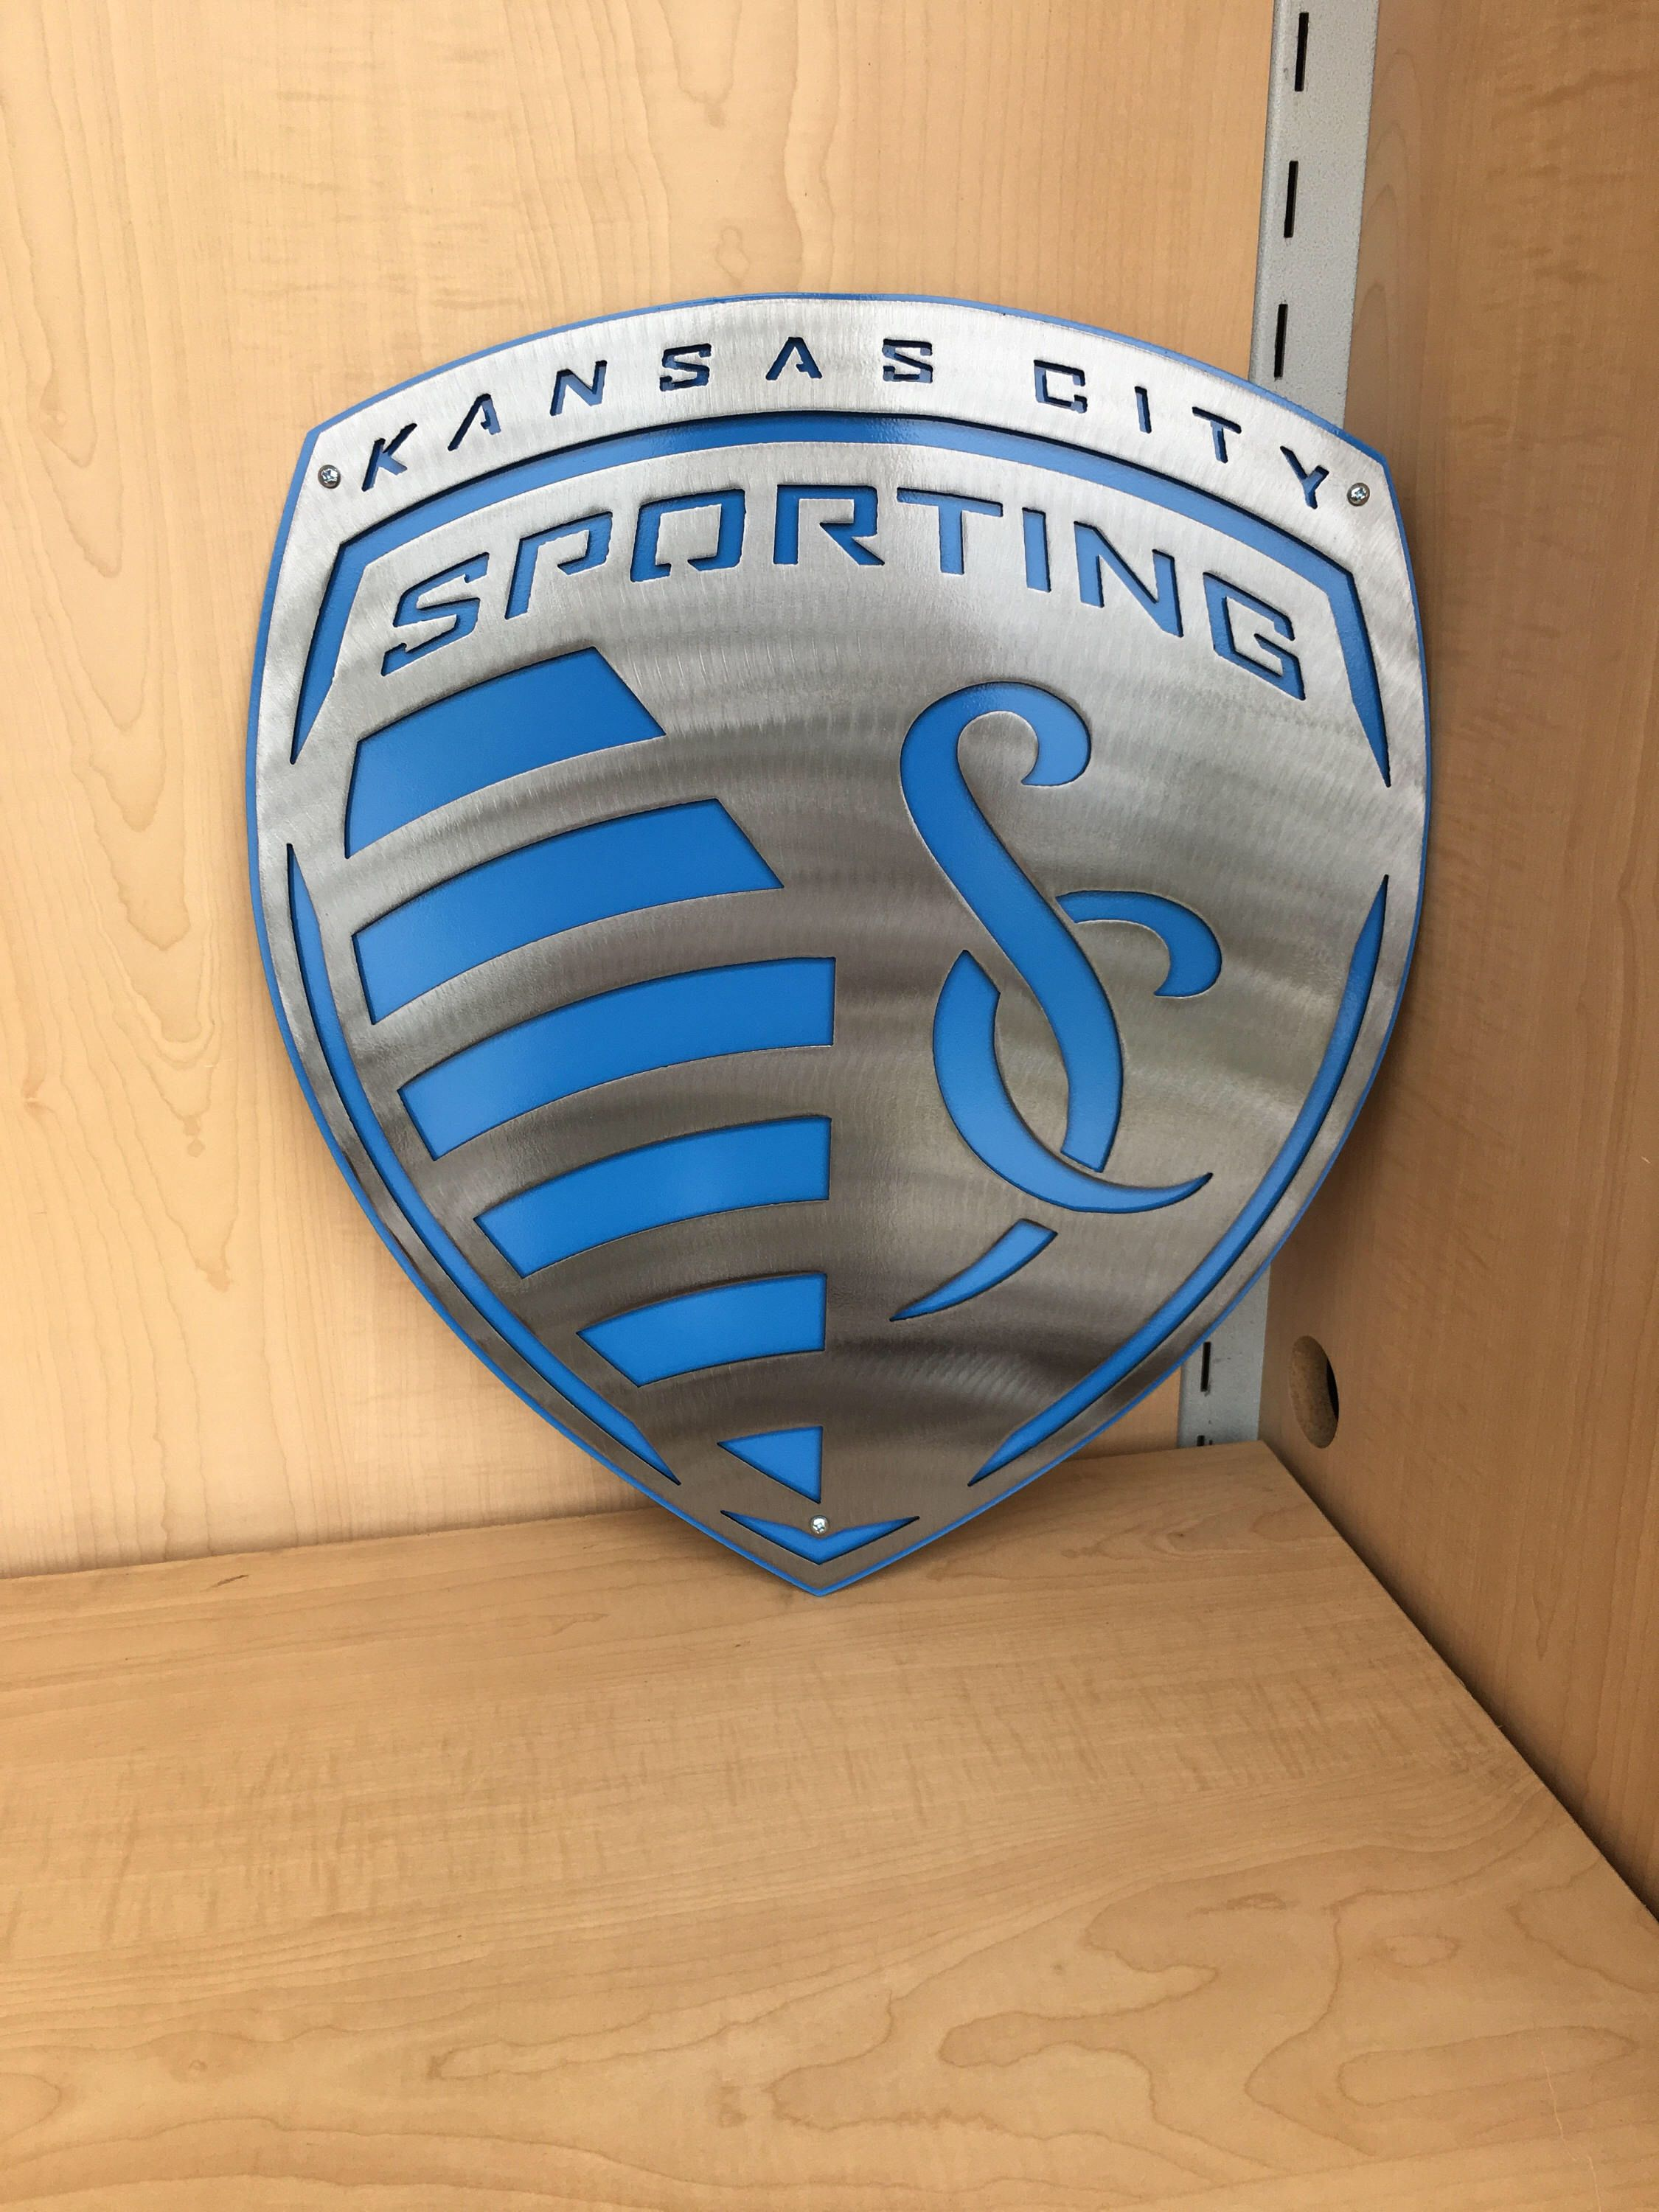 Sporting KC Dual Metal Wall Art Large Size Home Decor - Sporting kc wall decals